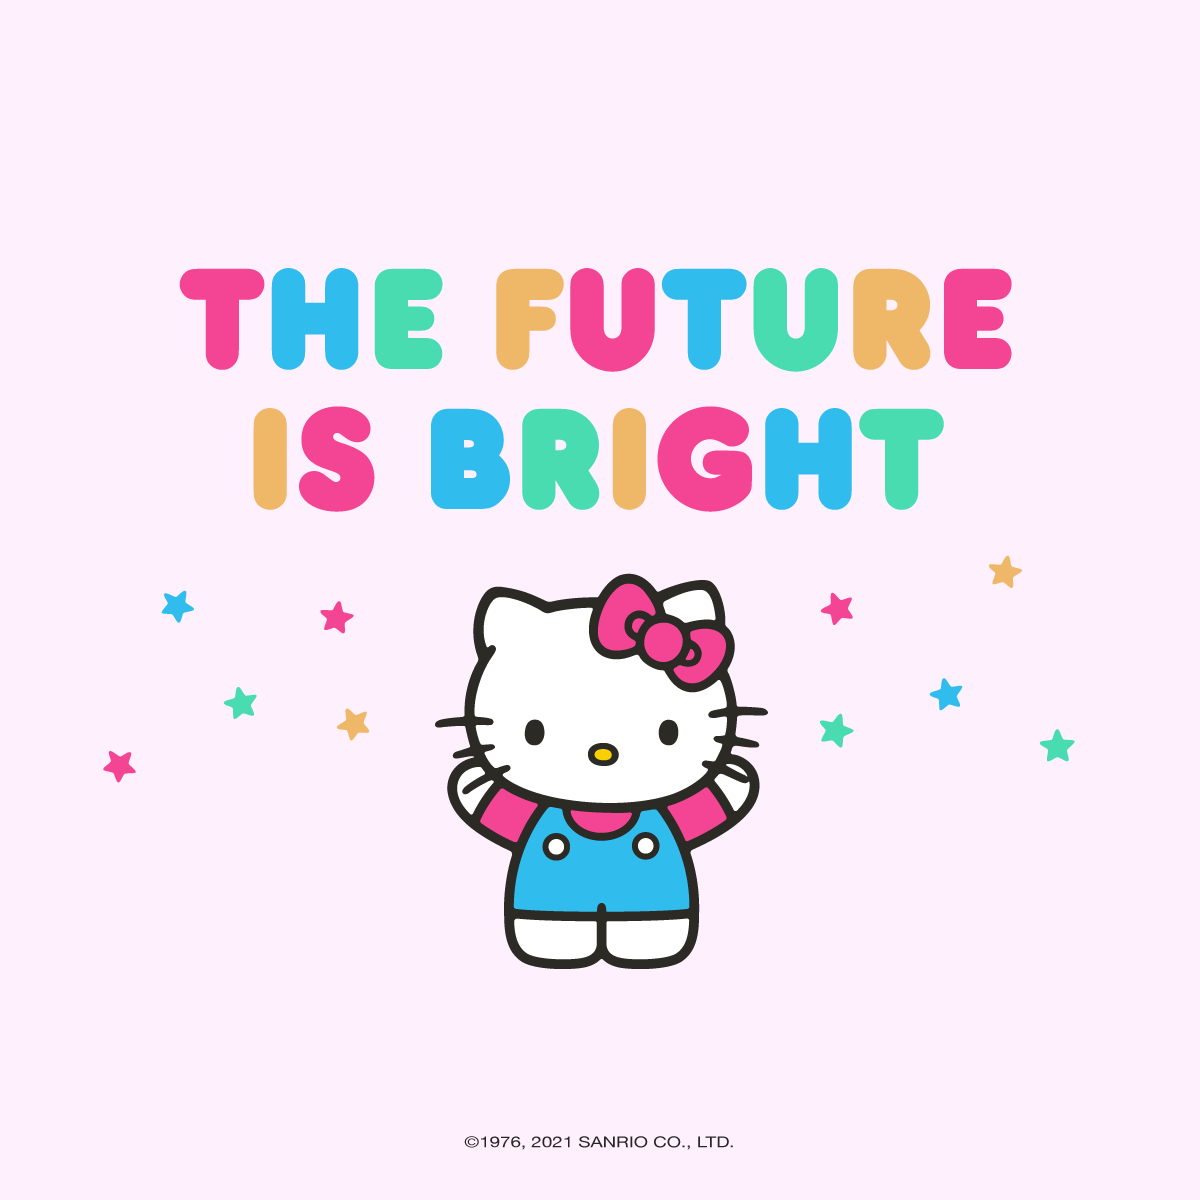 The future is bright ⭐💕✨#MondayMotivation⁠